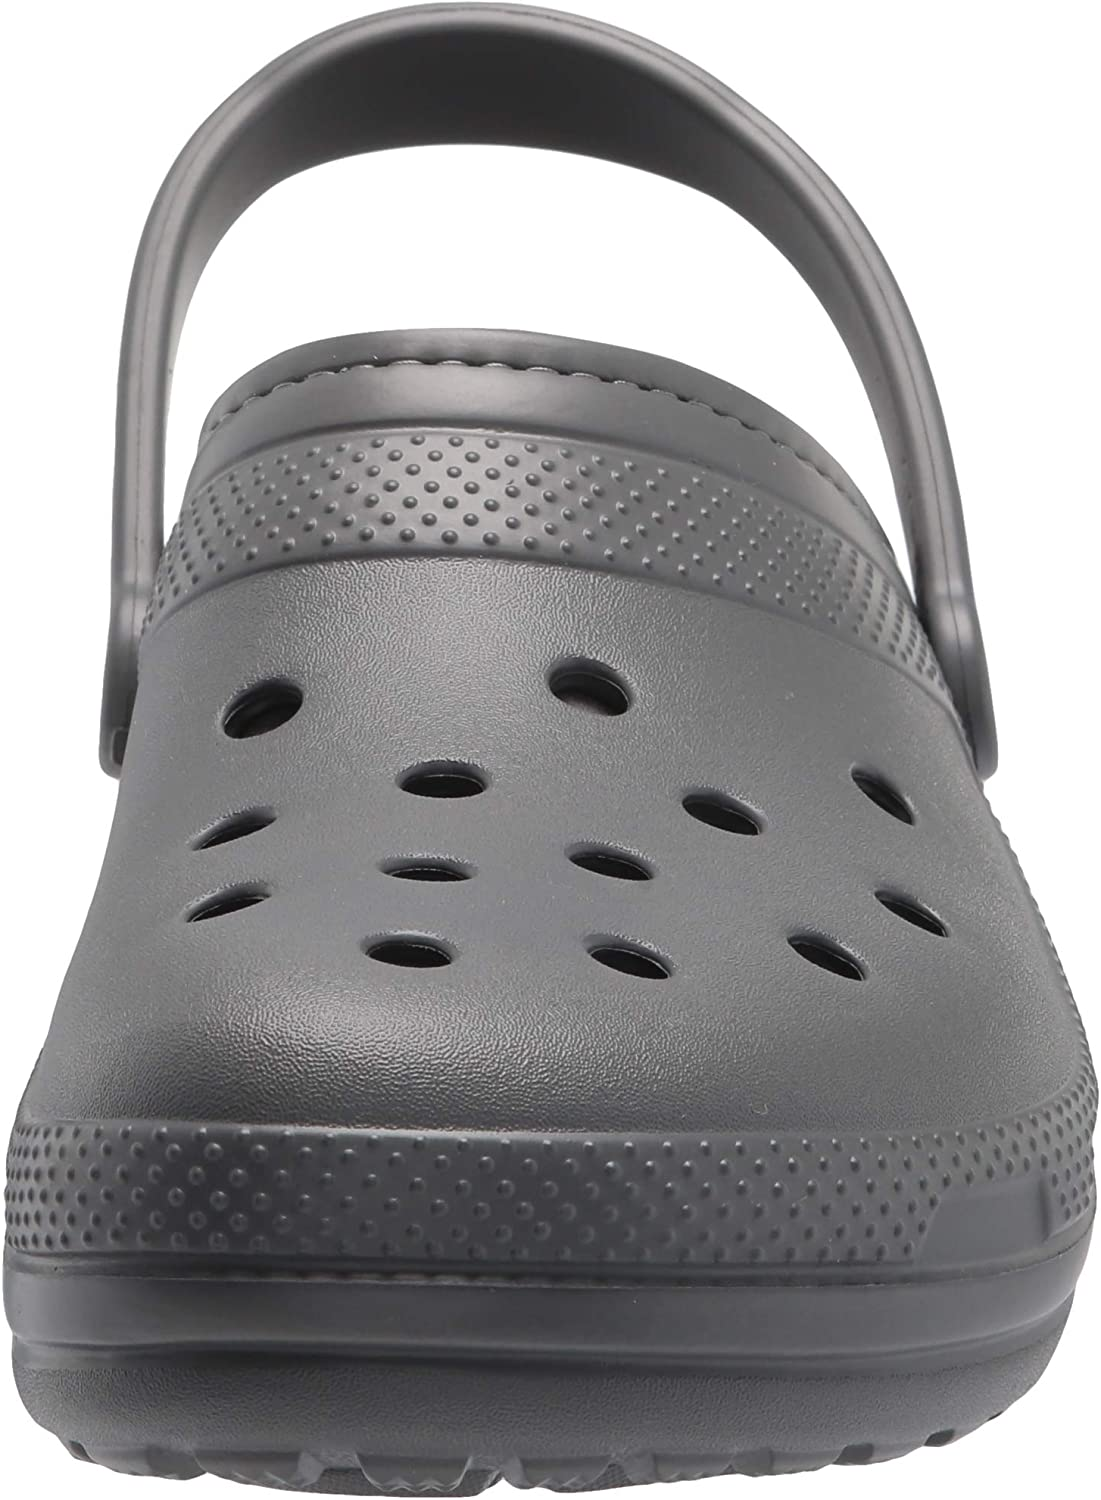 | Crocs Men's and Women's Classic Lined Clog | Warm and Fuzzy Slippers | Mules & Clogs